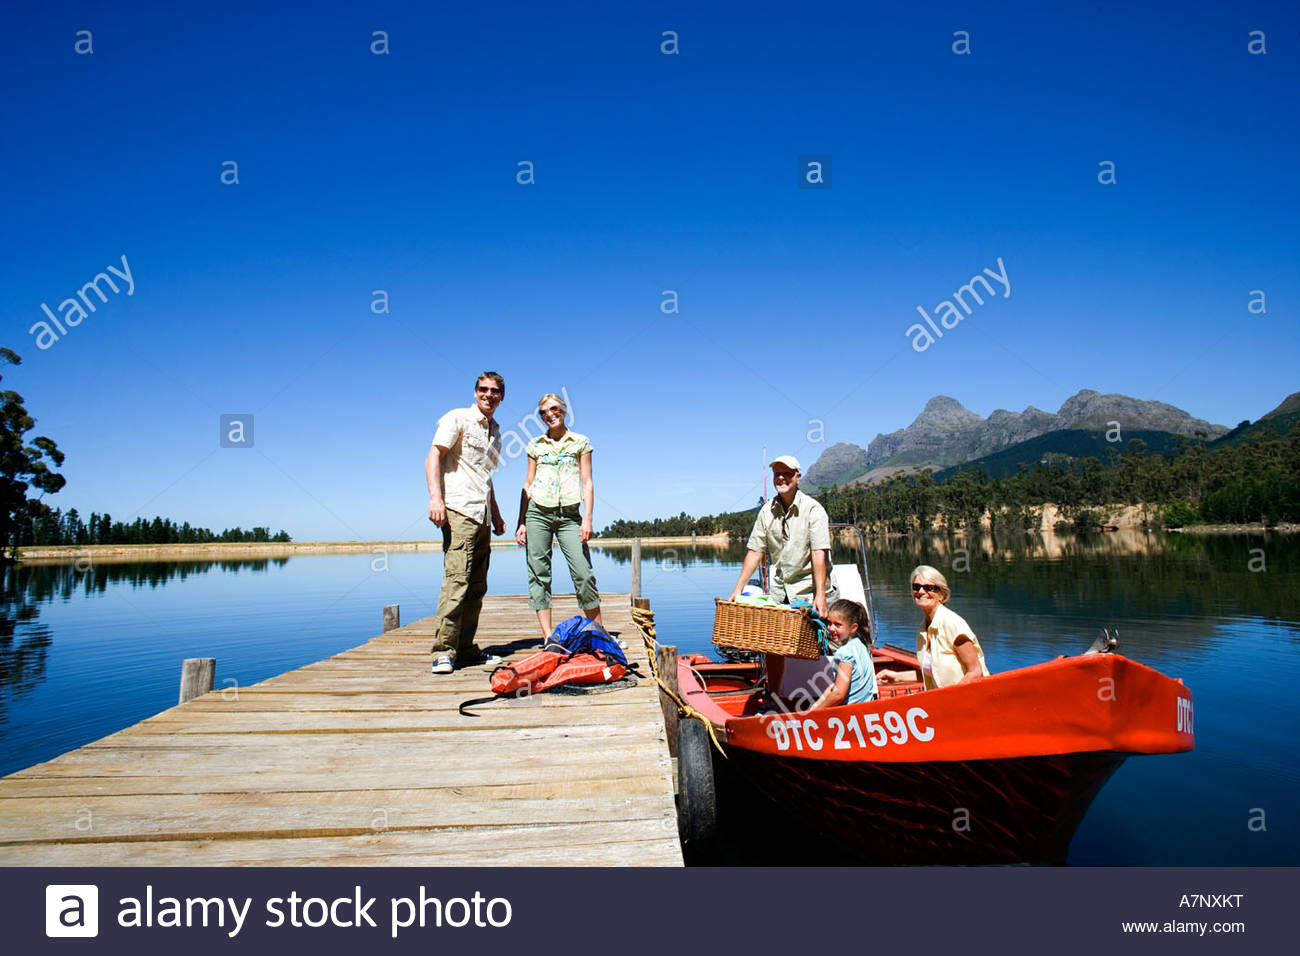 Multi generational family loading motorboat with provisions at lake jetty grandfather holding picnic hamper - Stock Image